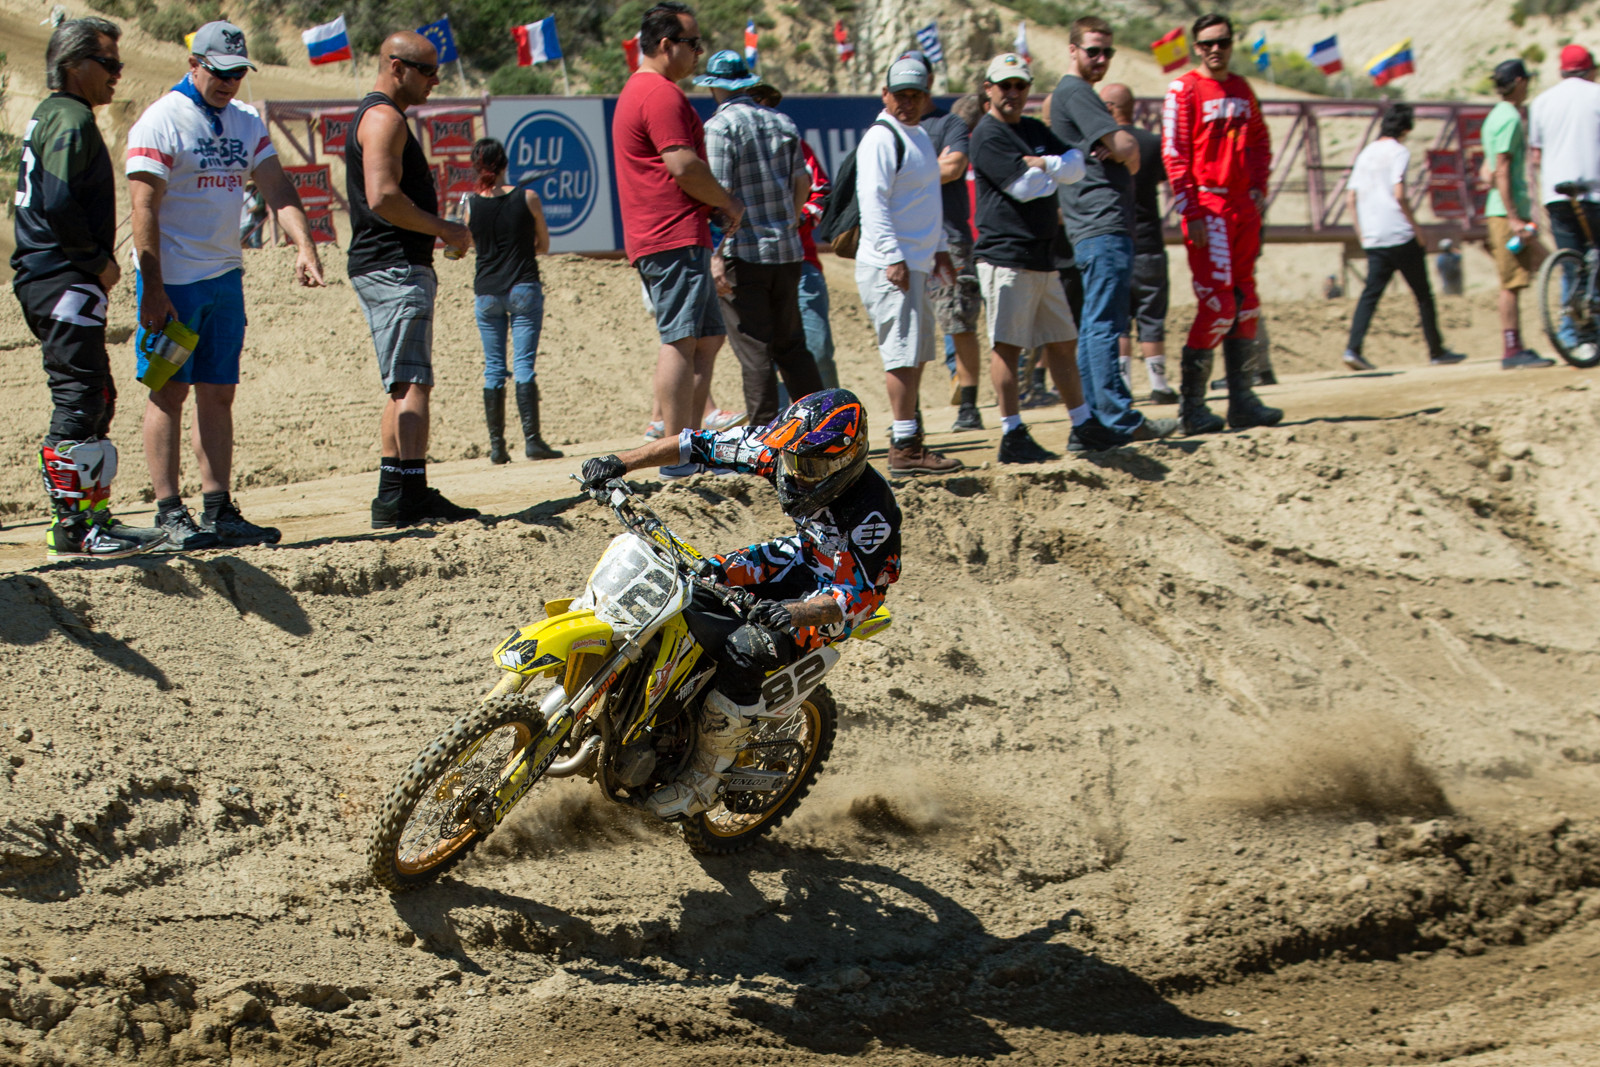 Michael Blose - 2016 MTA World Two-Stroke Nationals - Motocross Pictures - Vital MX